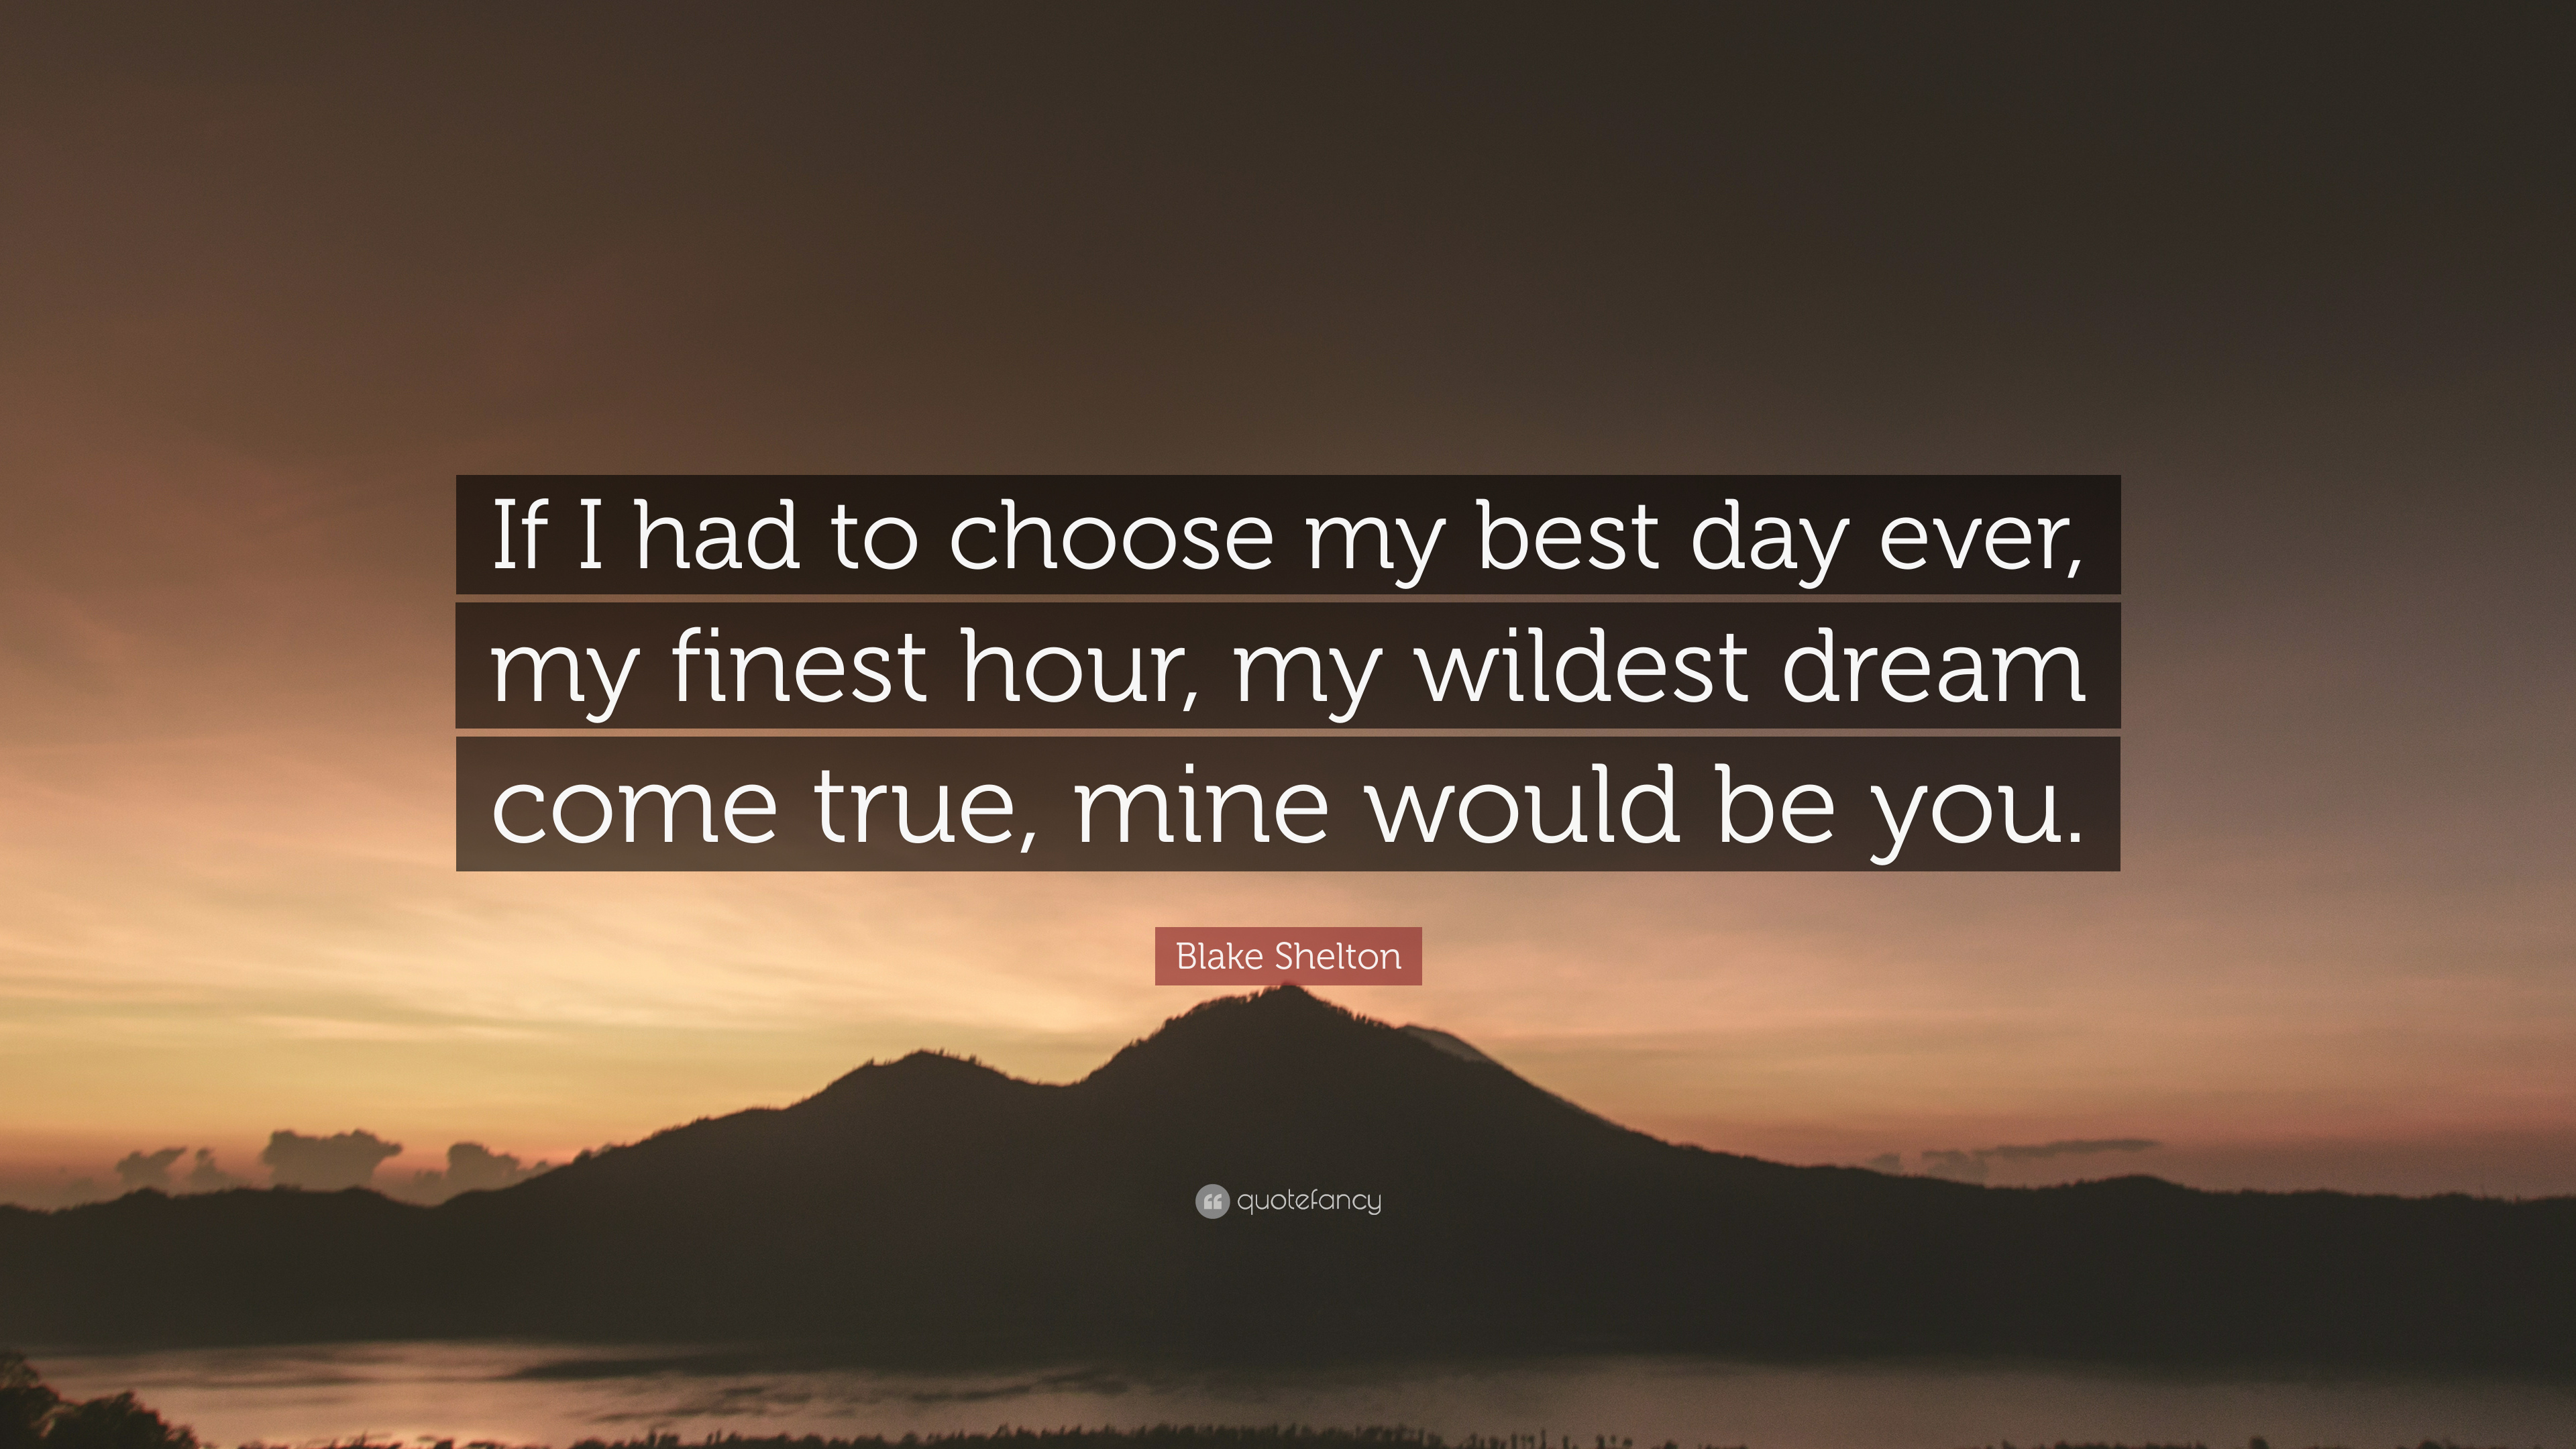 Blake Shelton Quote If I Had To Choose My Best Day Ever My Finest